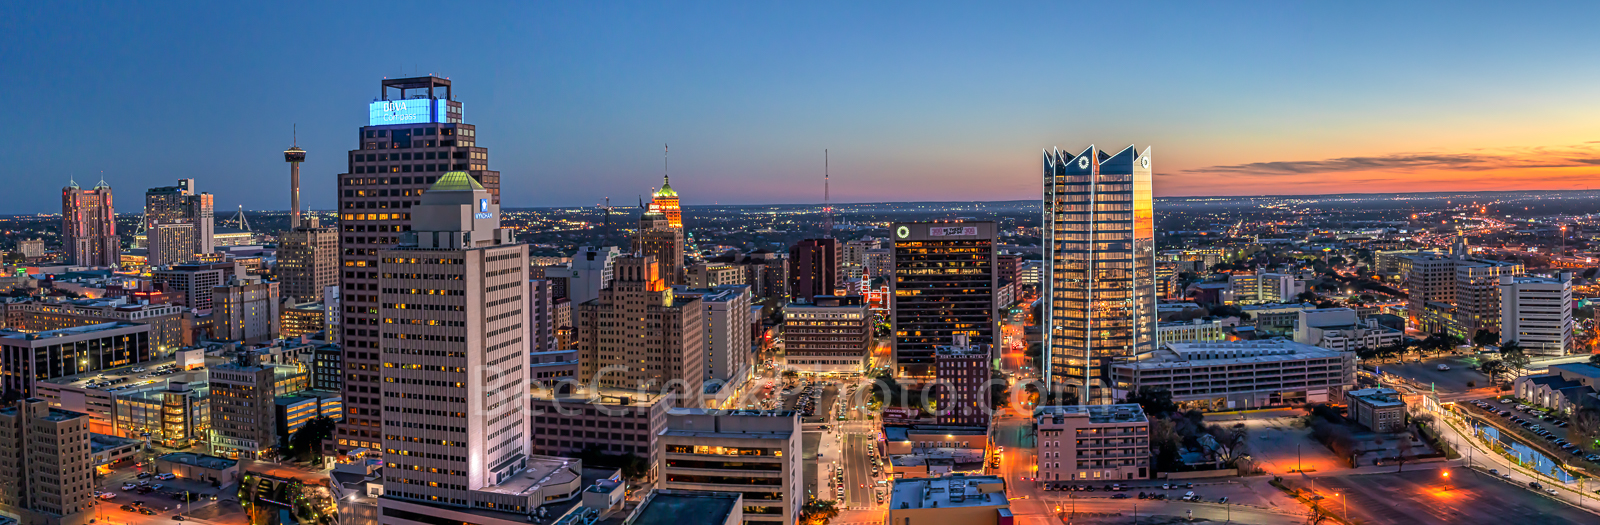 San Antonio skyline sunset, San Antonio skyline, San Antonio, San Antonio images, San Antonio pictures, texas, downtown, Frost Tower, Frost, Tower Life, building, pano, panorama, cityscape, cityscapes